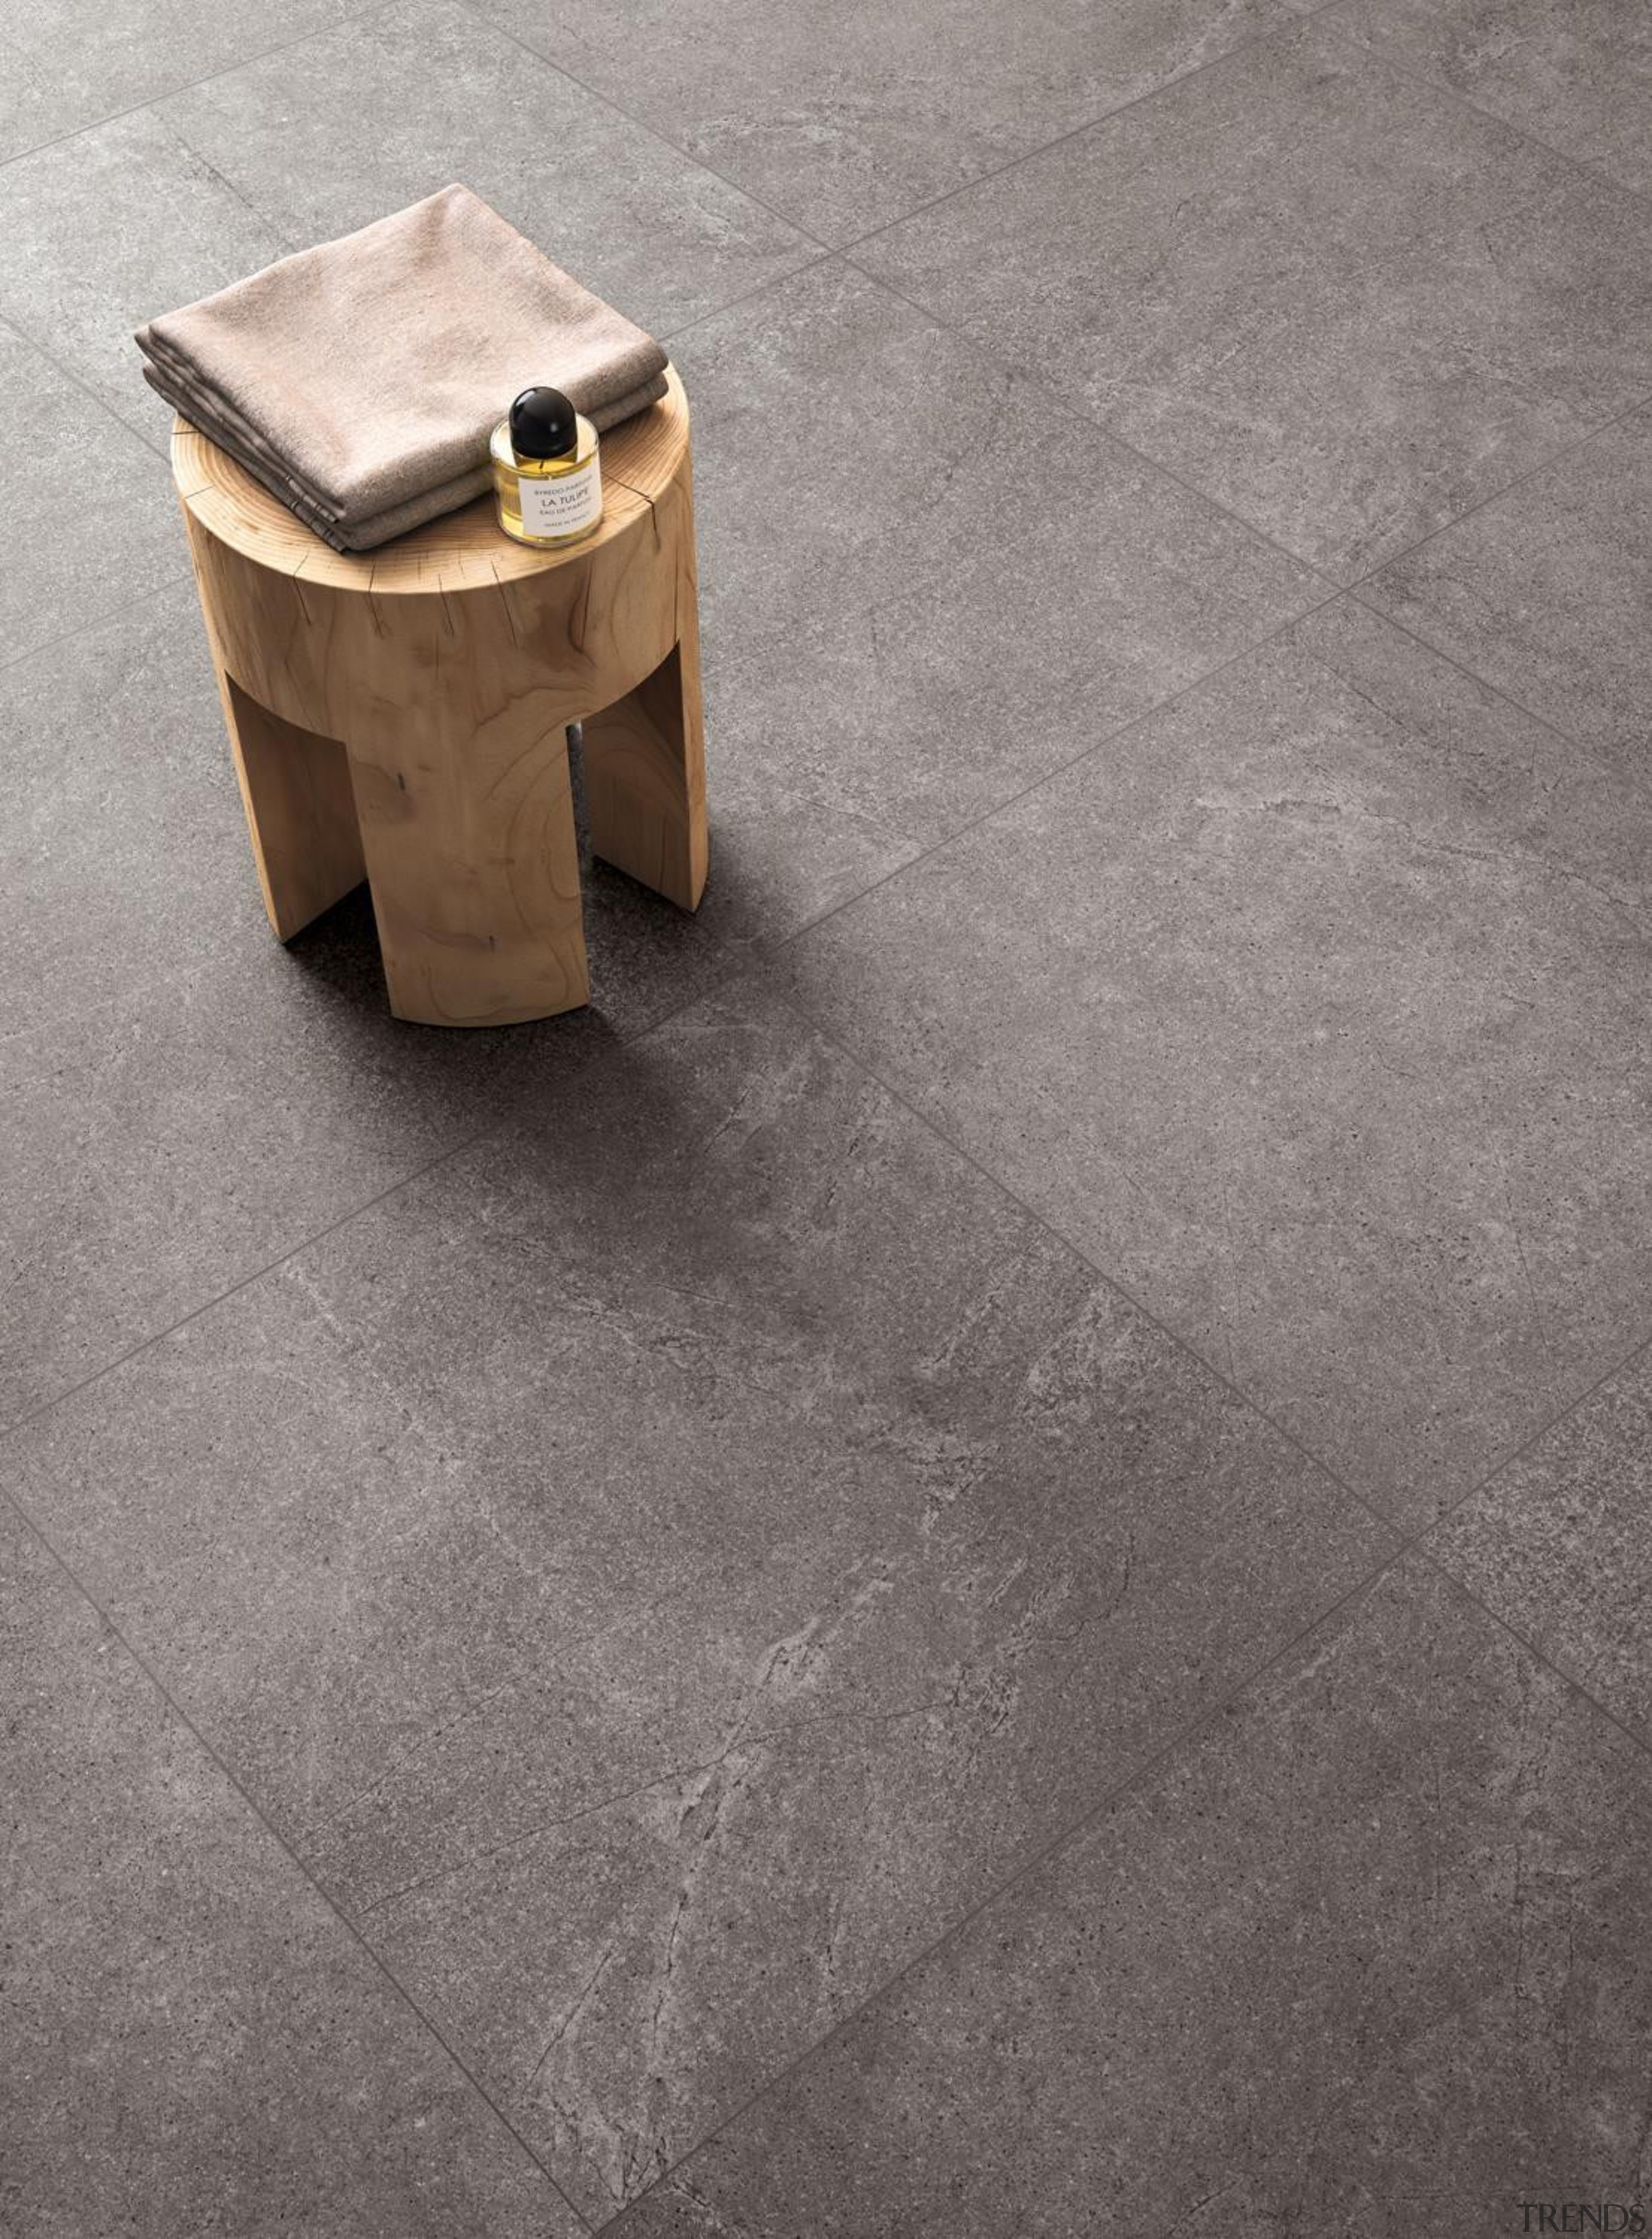 Stains, dirt, and dust are easily removed from floor, flooring, hardwood, tile, gray